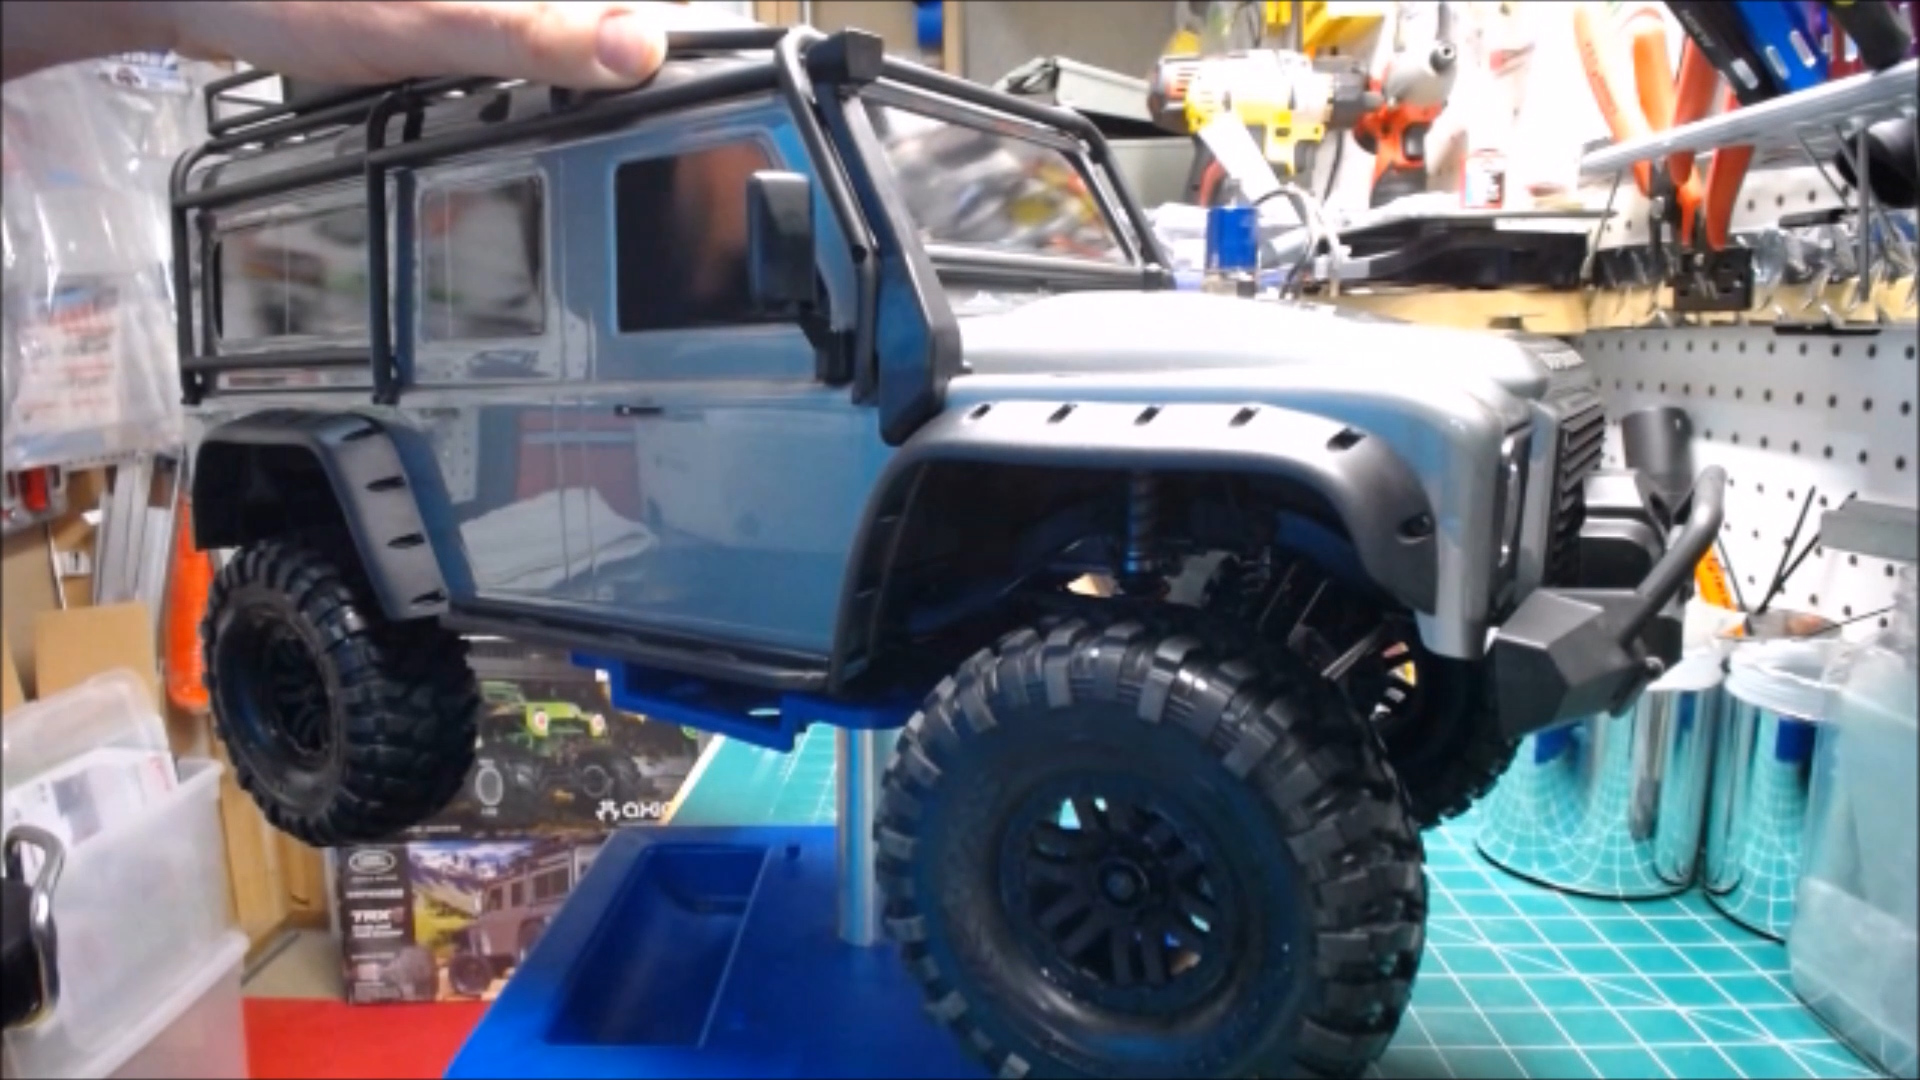 Check out the Traxxas TRX-4